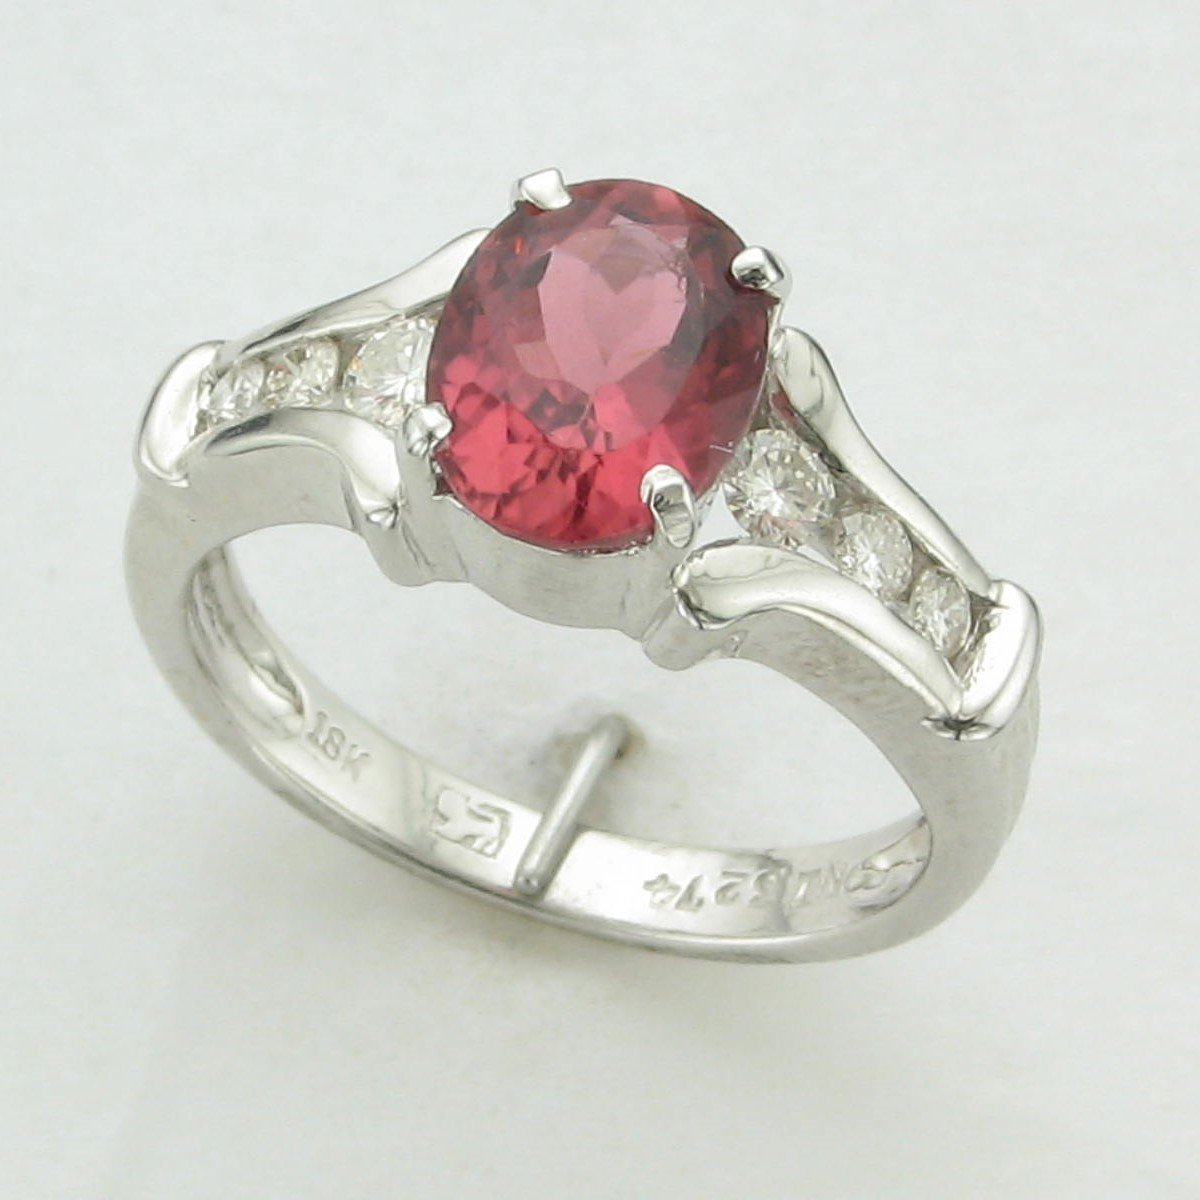 18K White Gold Designer Pink Tourmaline and Diamond Ring